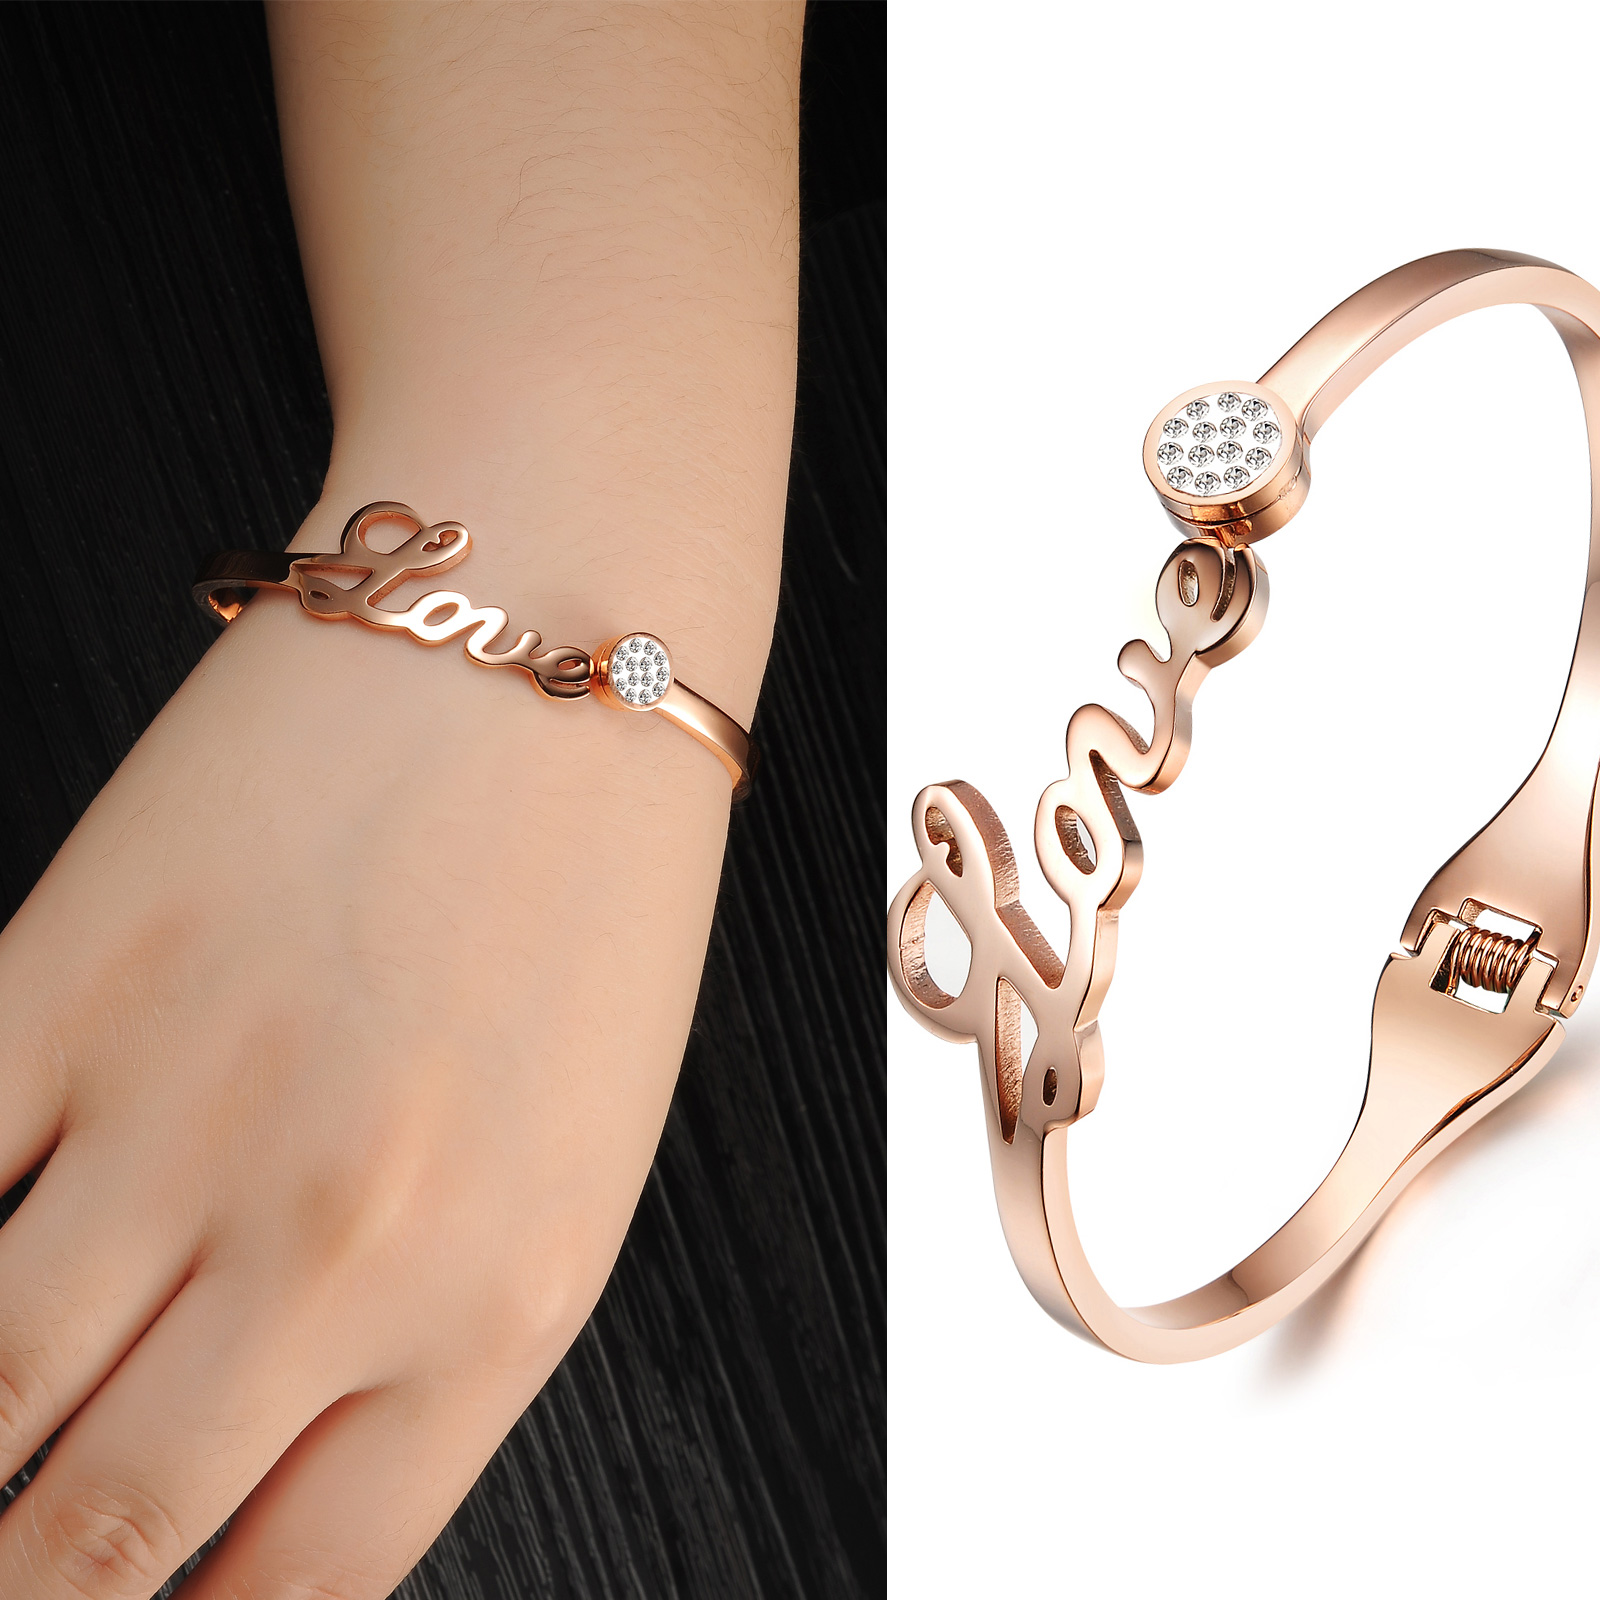 Personalized Custom Letter Stainless Steel Zircon Bracelet For Women